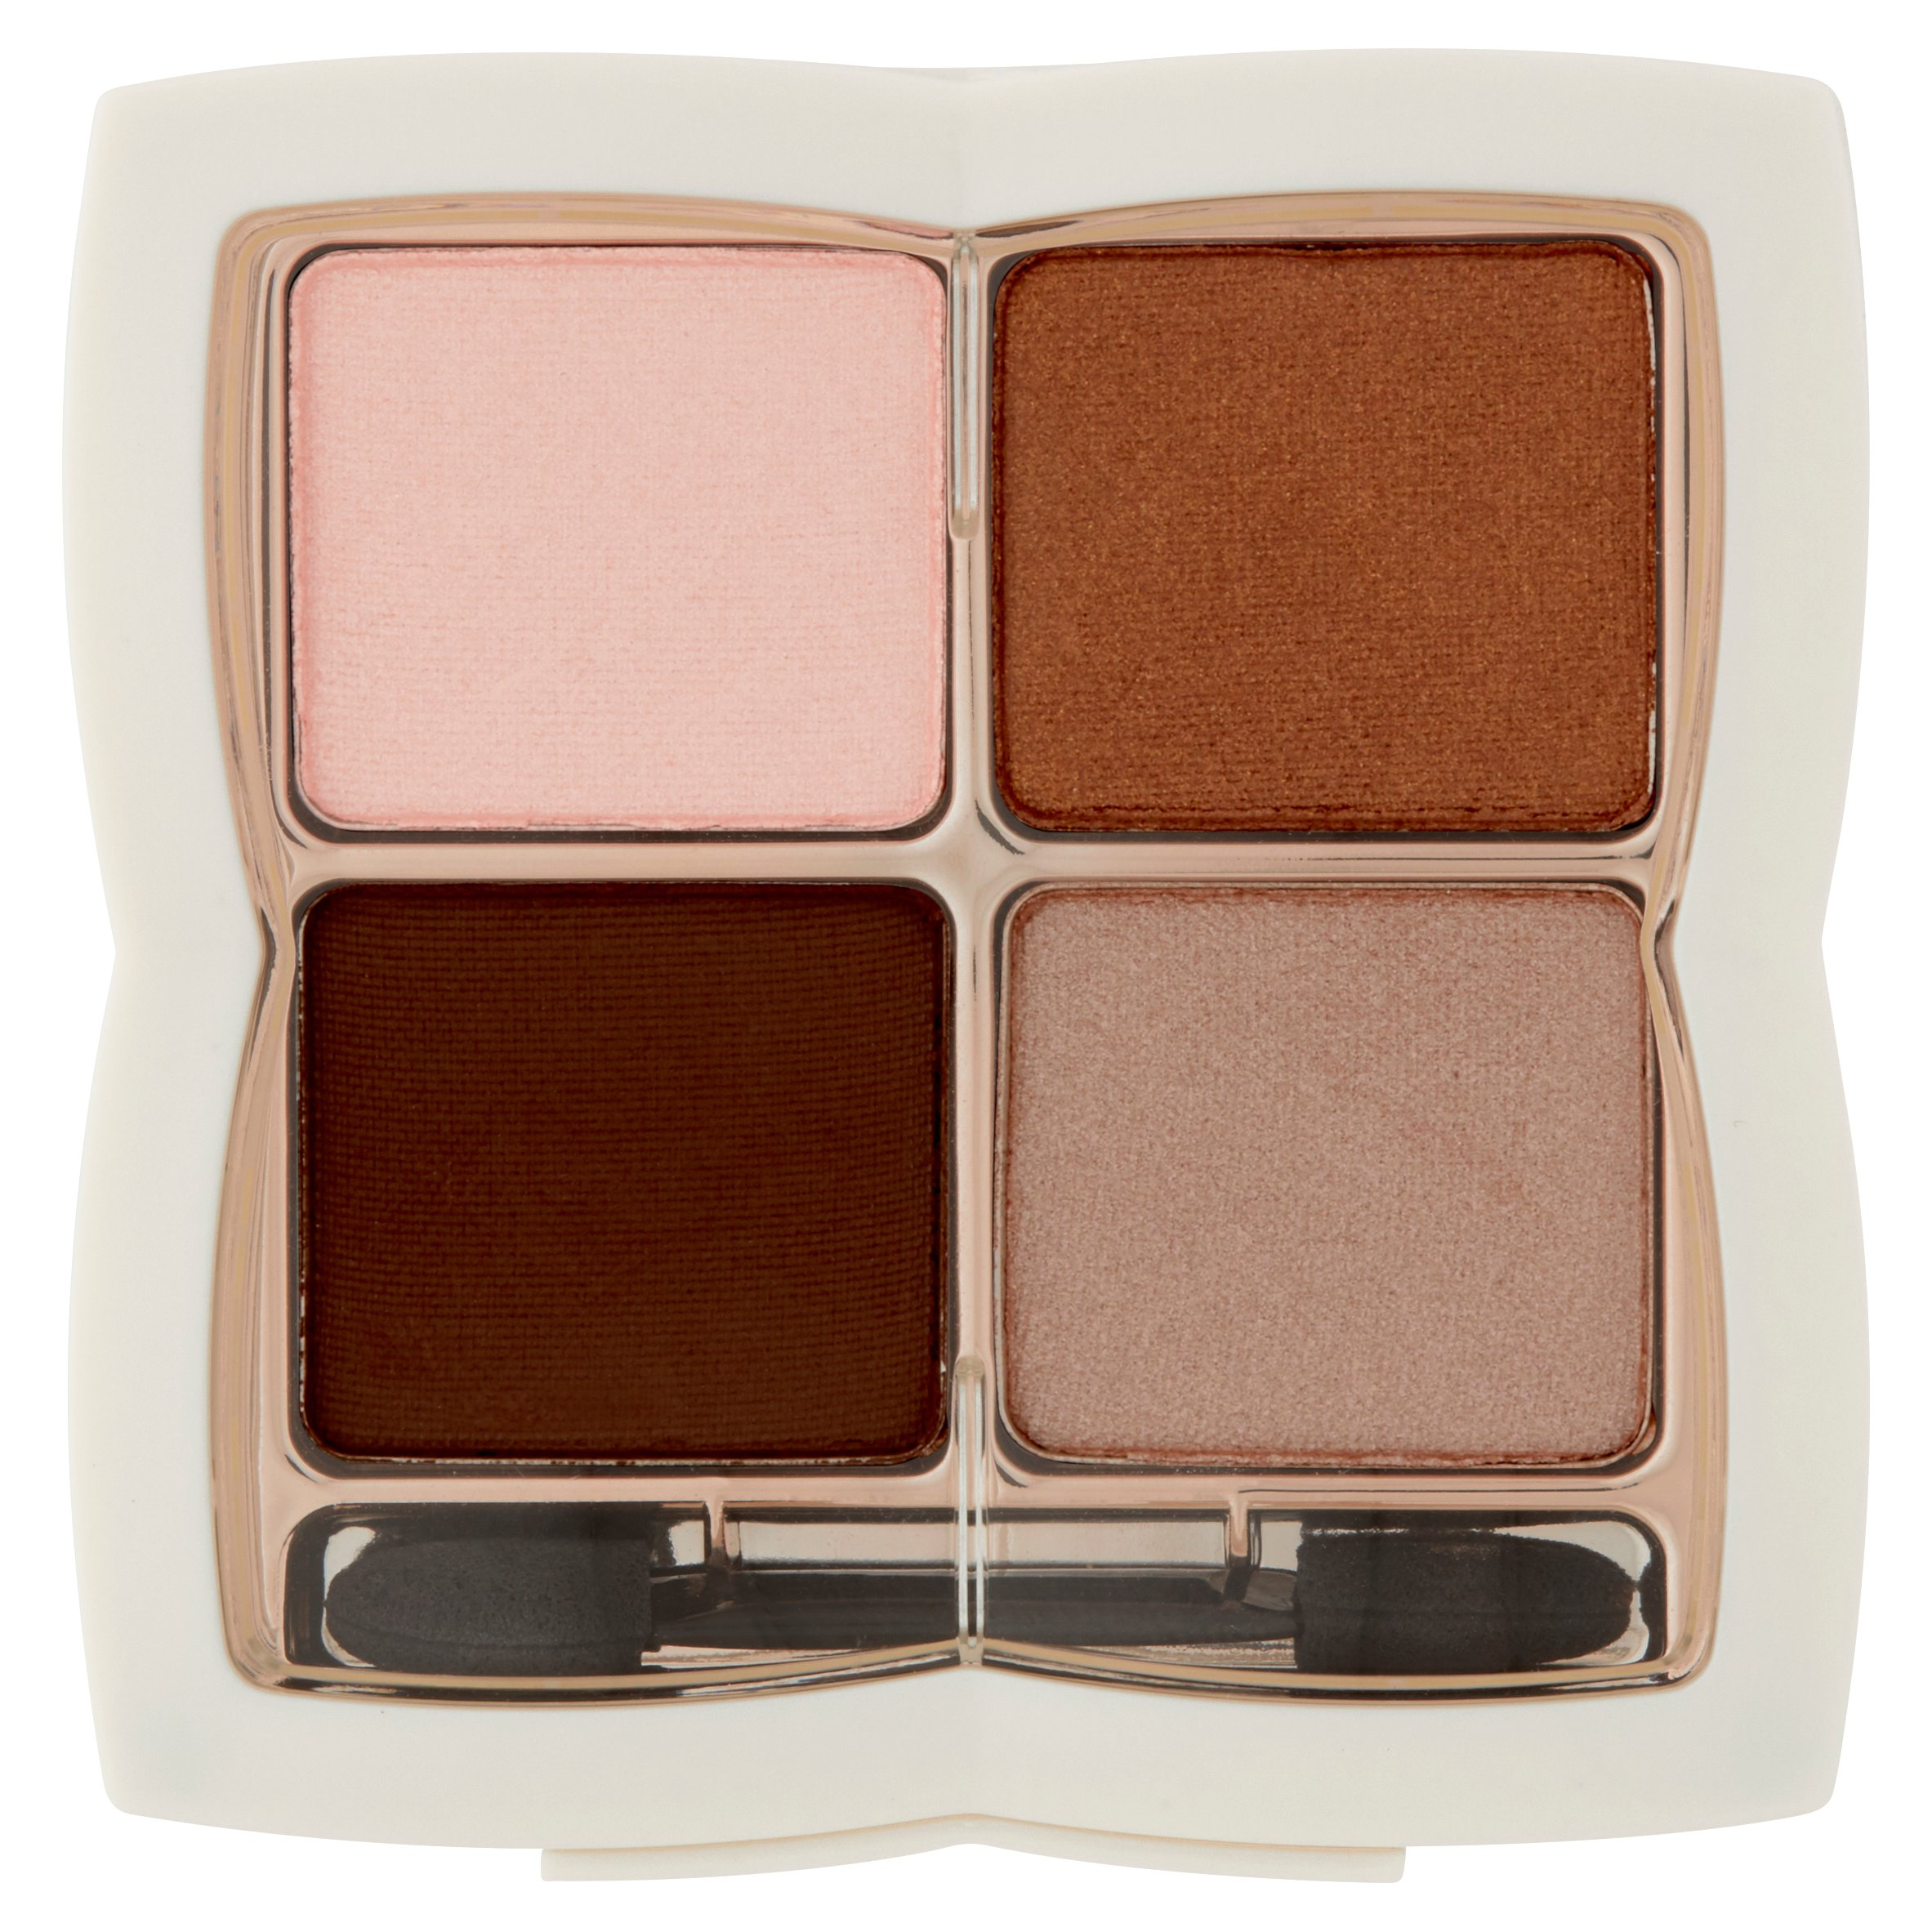 FLOWER Shadow Play Eye Shadow Quad, Foxy Browns